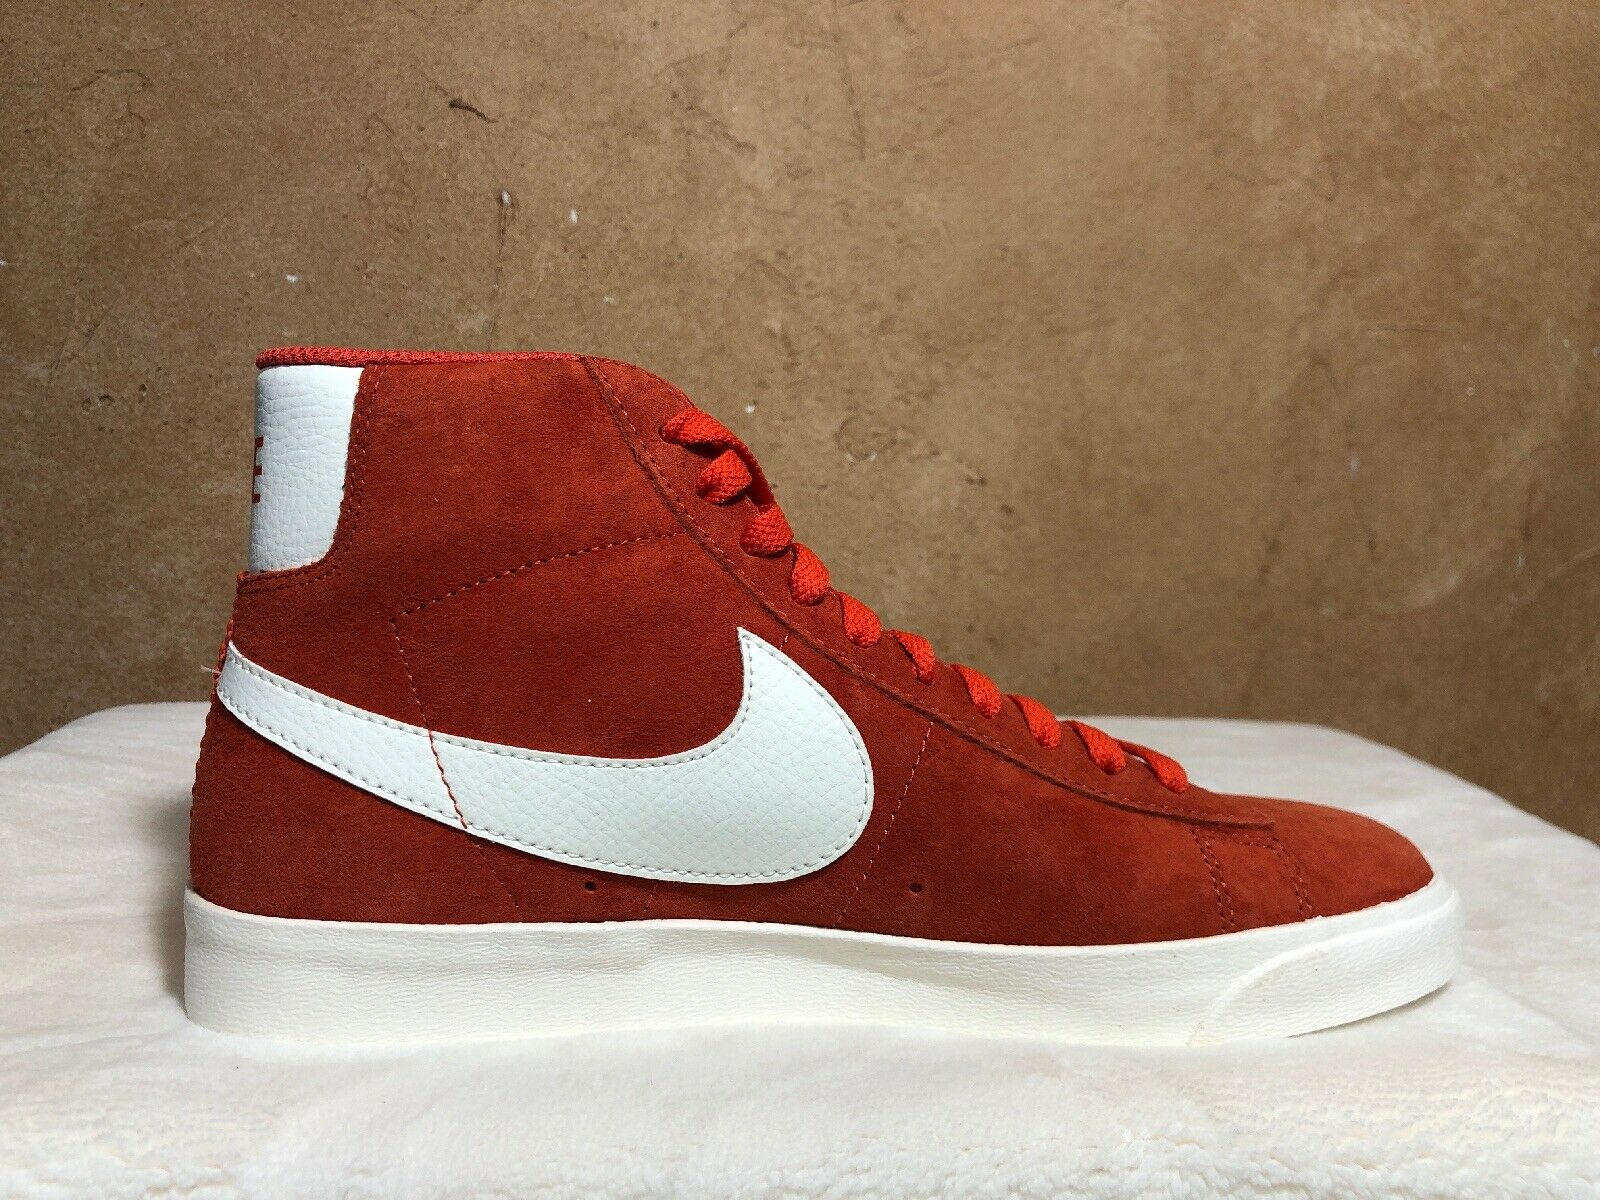 NIKE Womens Blazer Mid Vntg Suede 917862-800 VINTAGE CORAL SAIL-SAIL Size 8.5